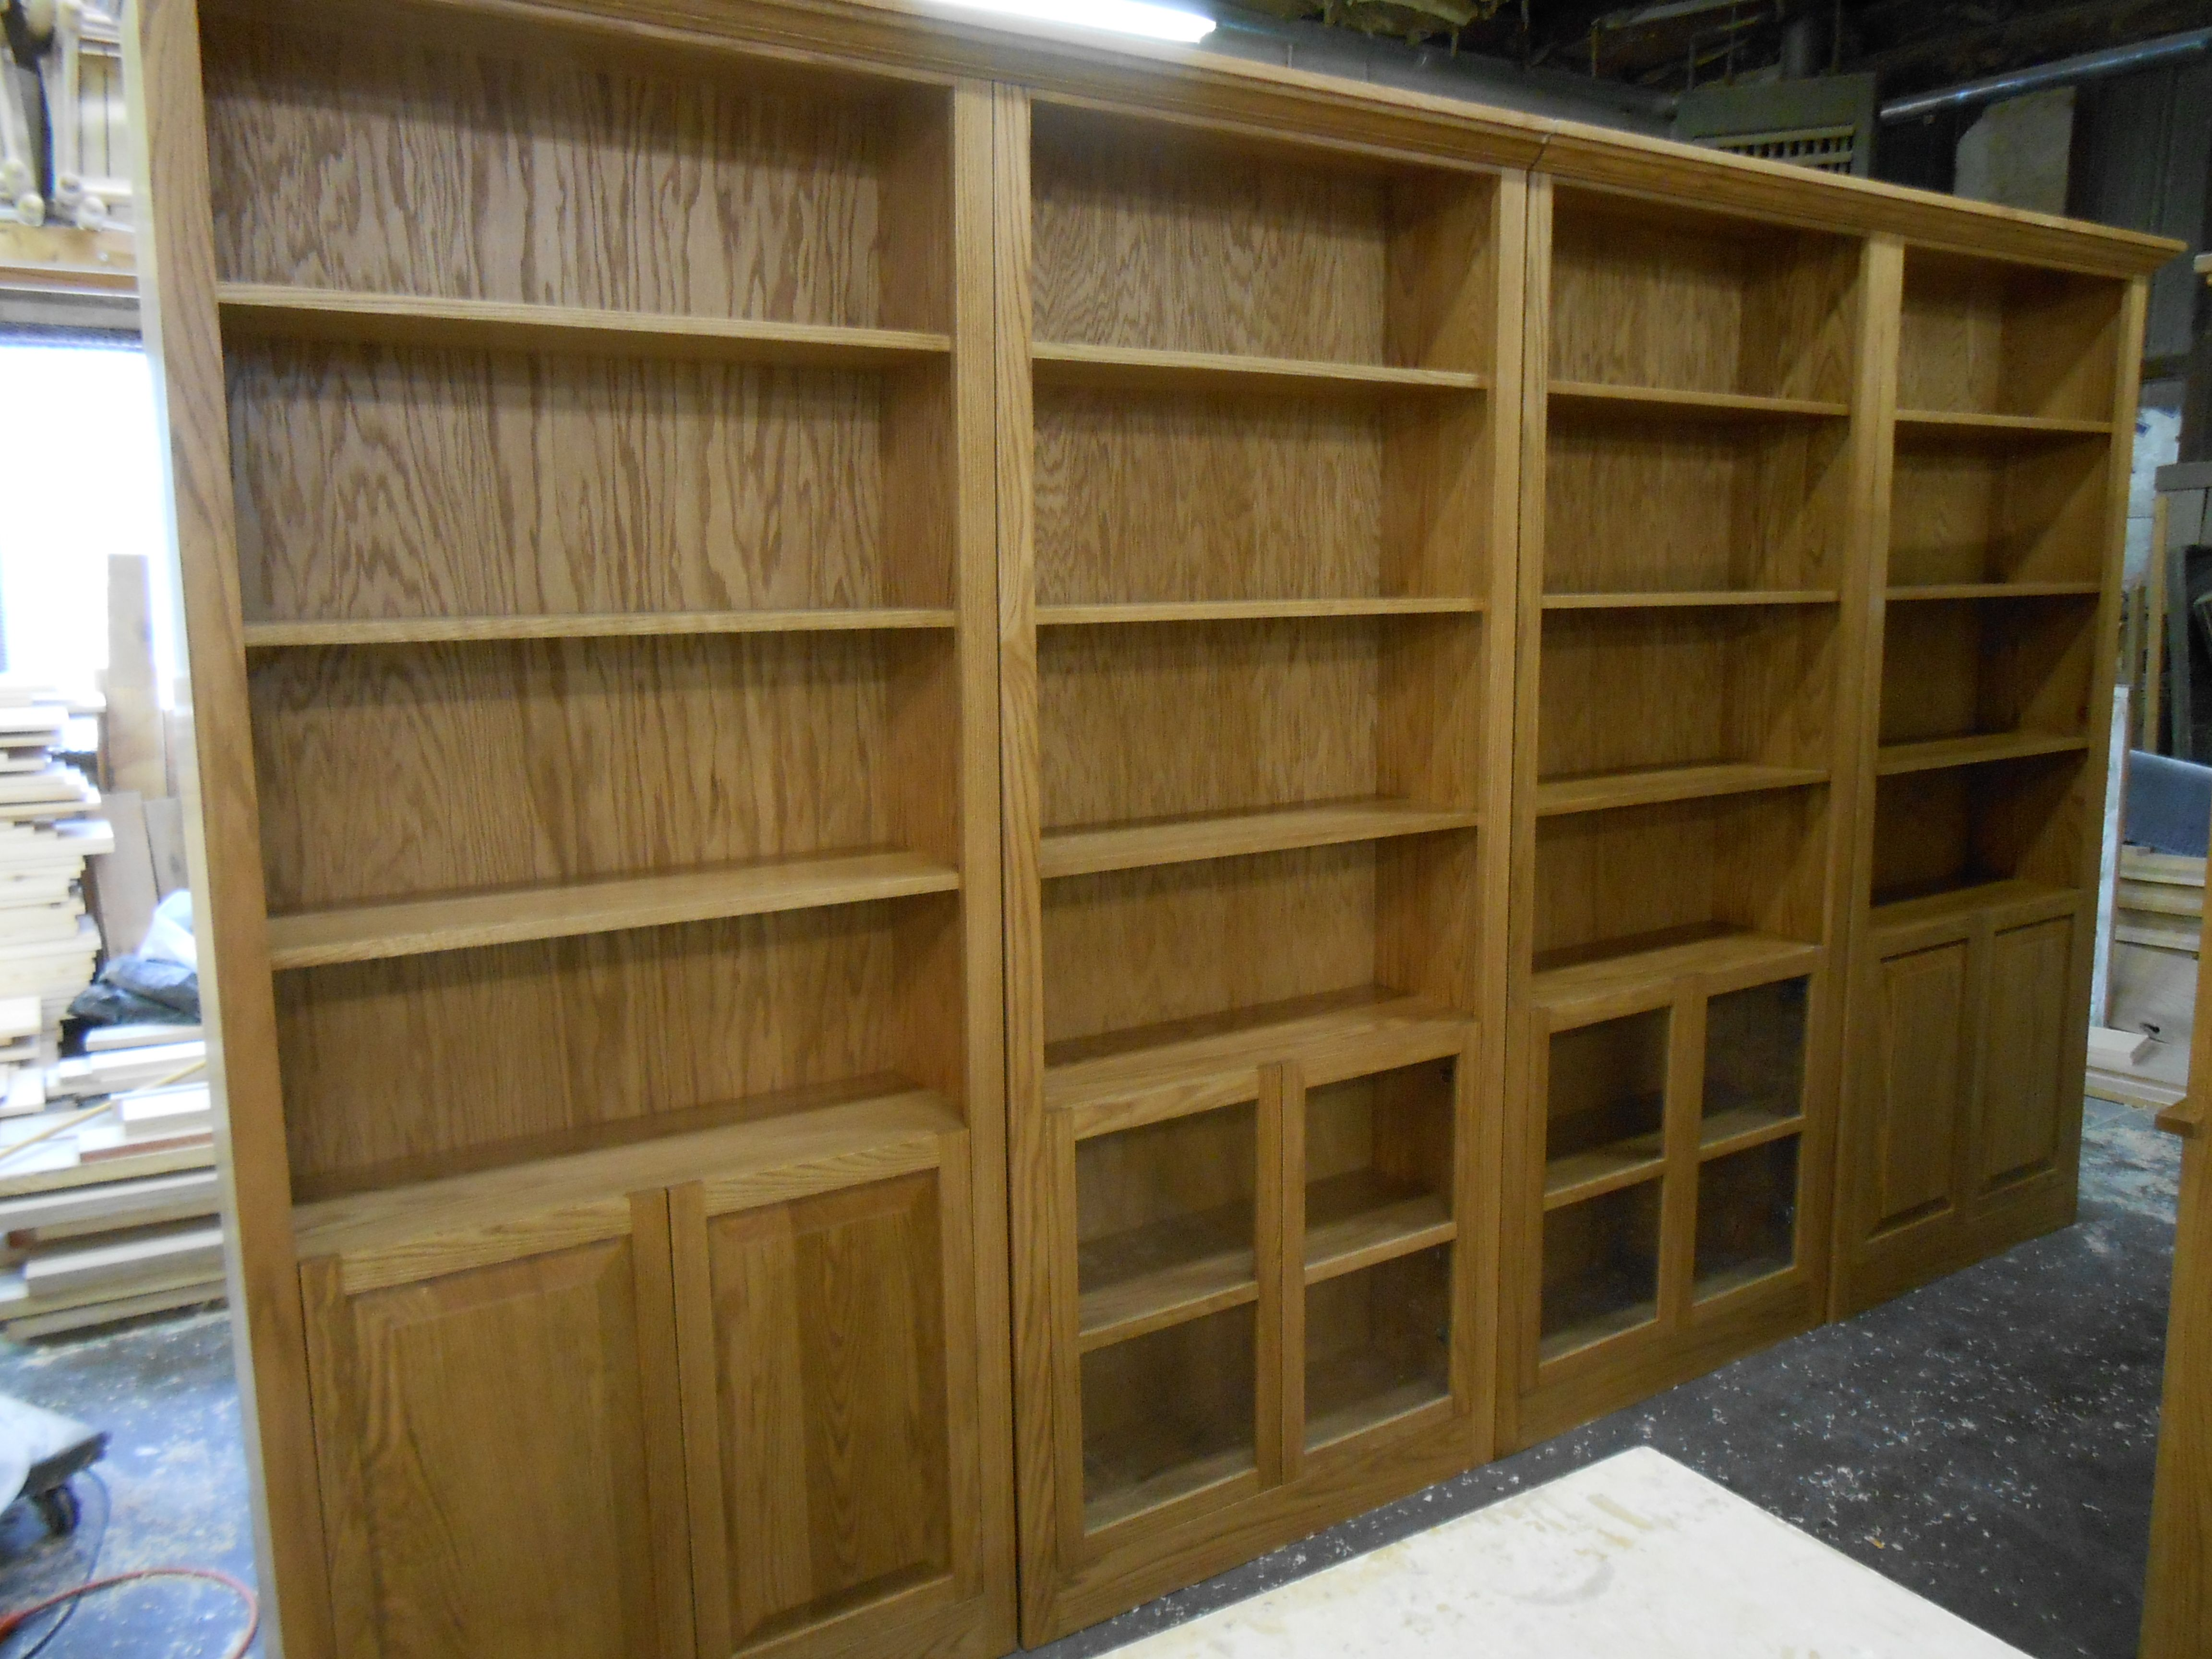 Solid oak wall of bookcases built by w harris and sons in